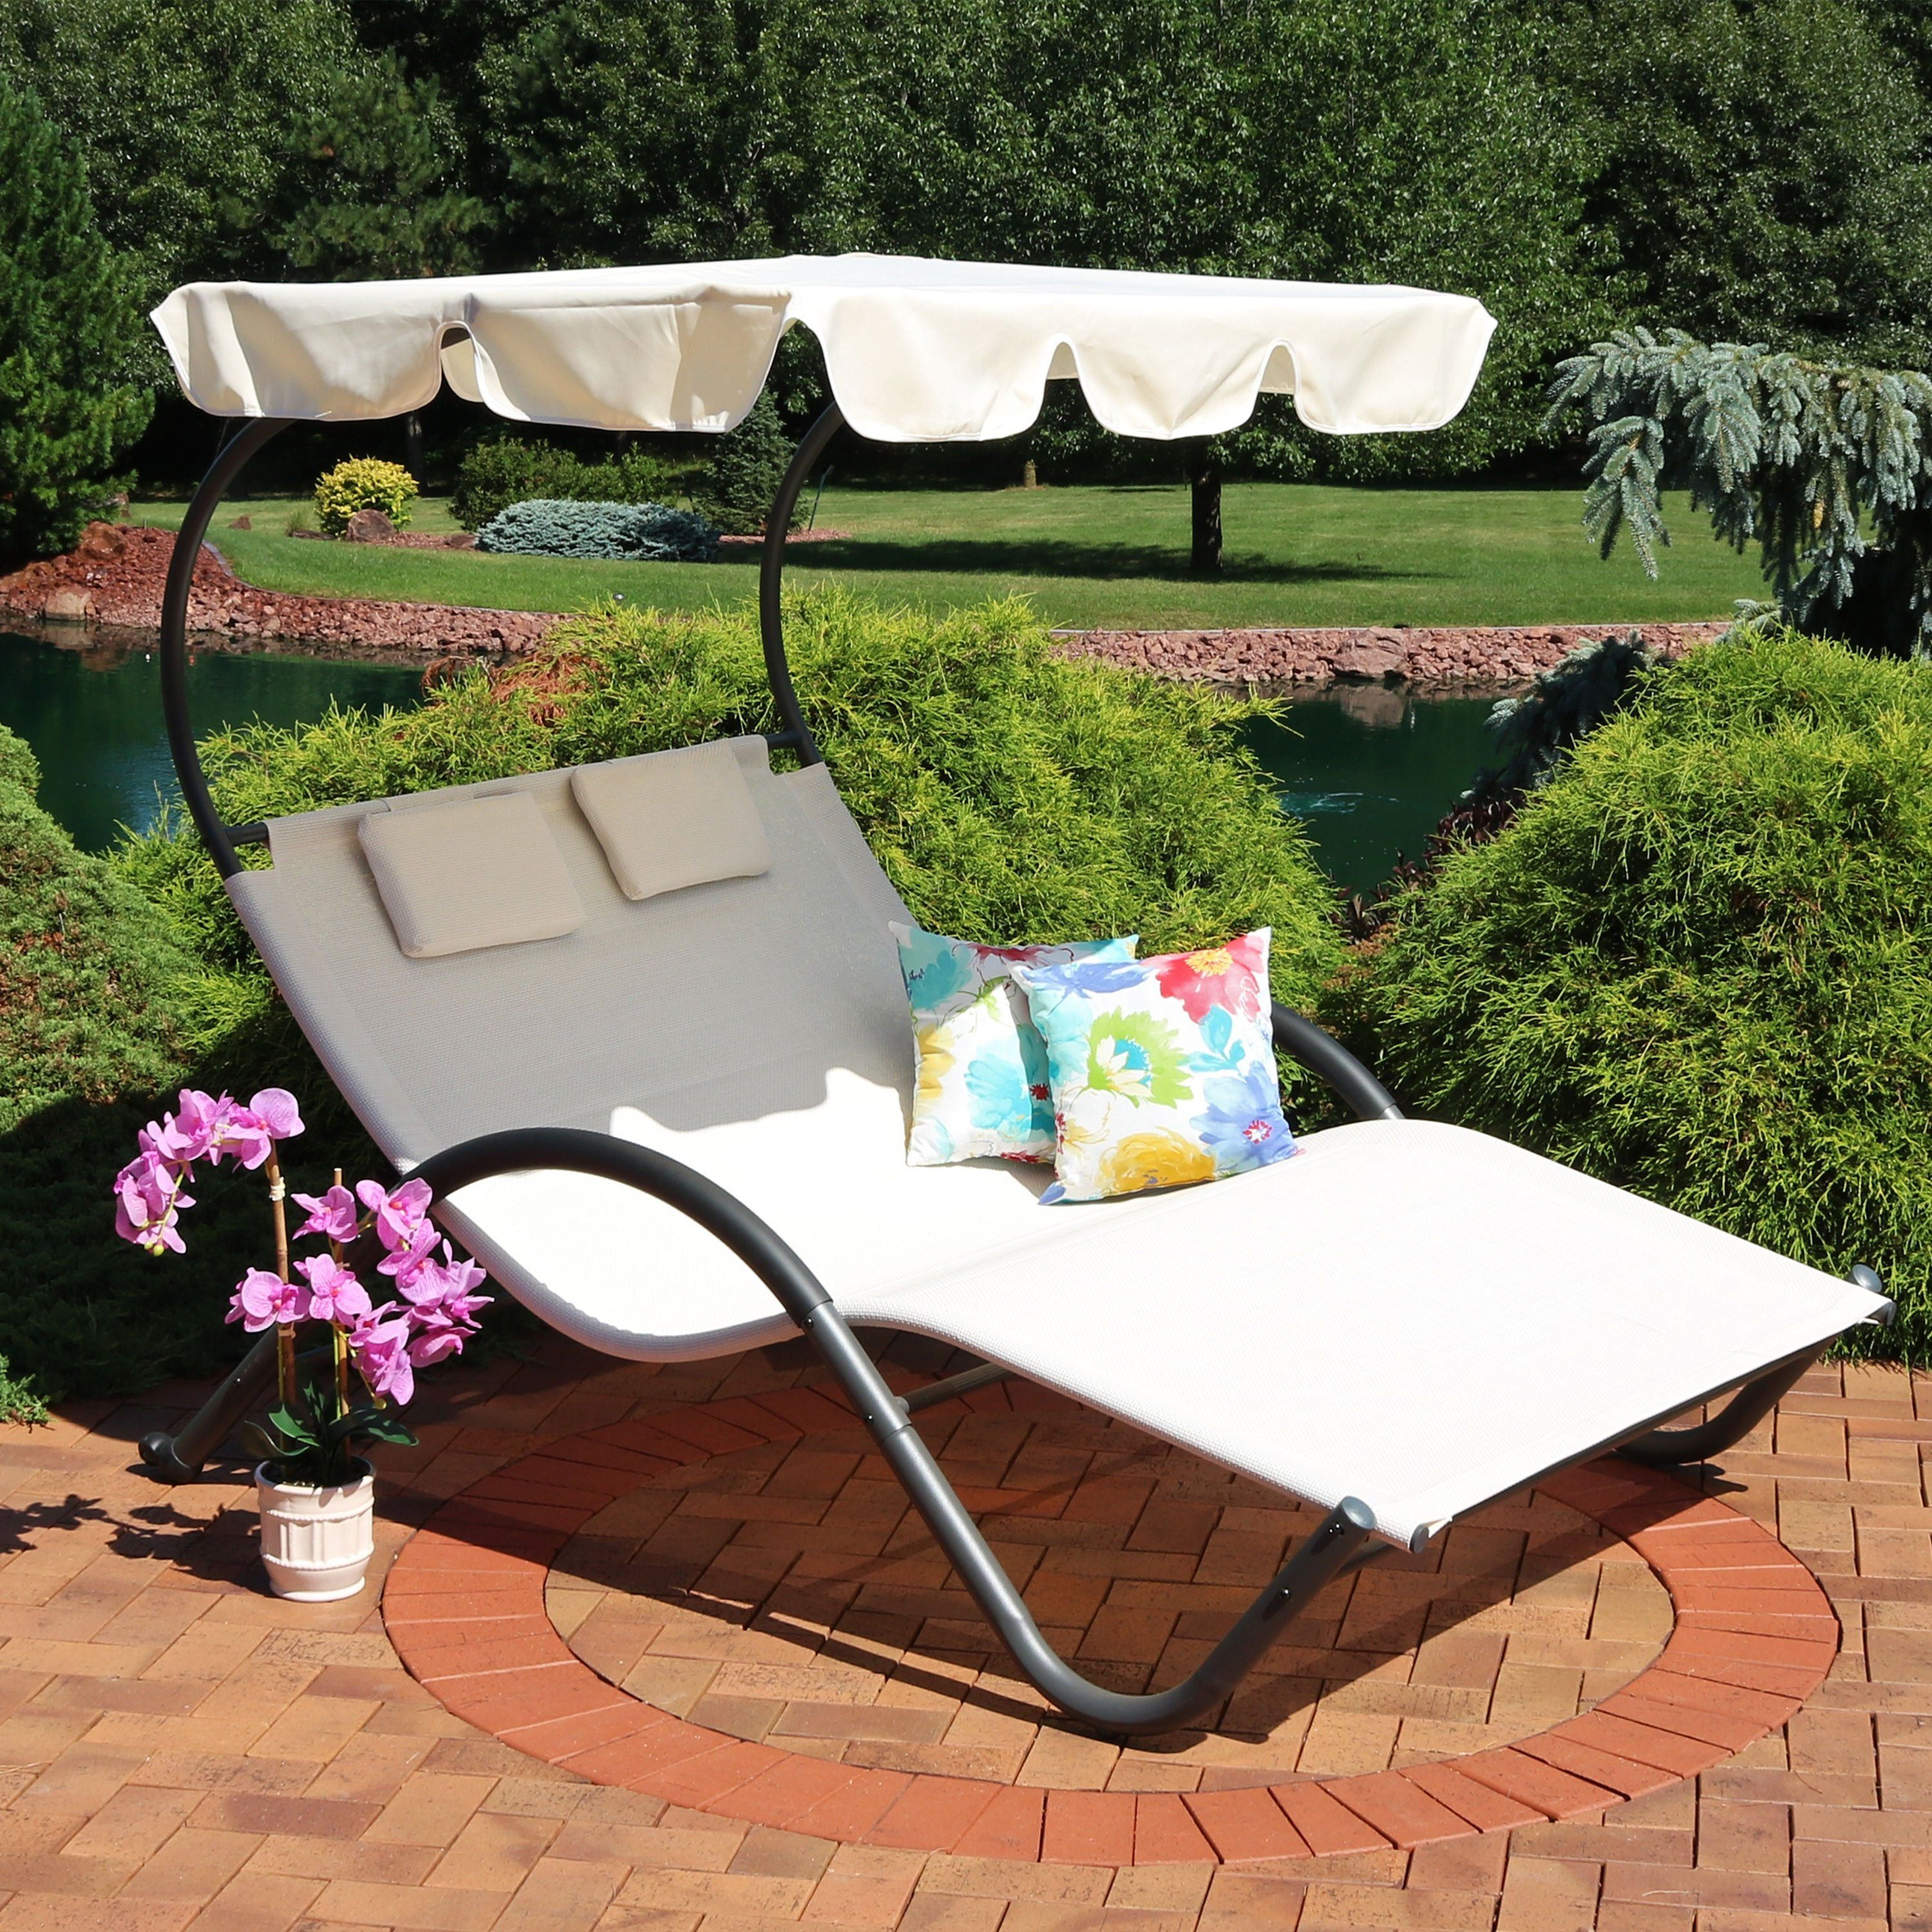 - Sunnydaze Double Chaise Lounge With Canopy Shade And Headrest